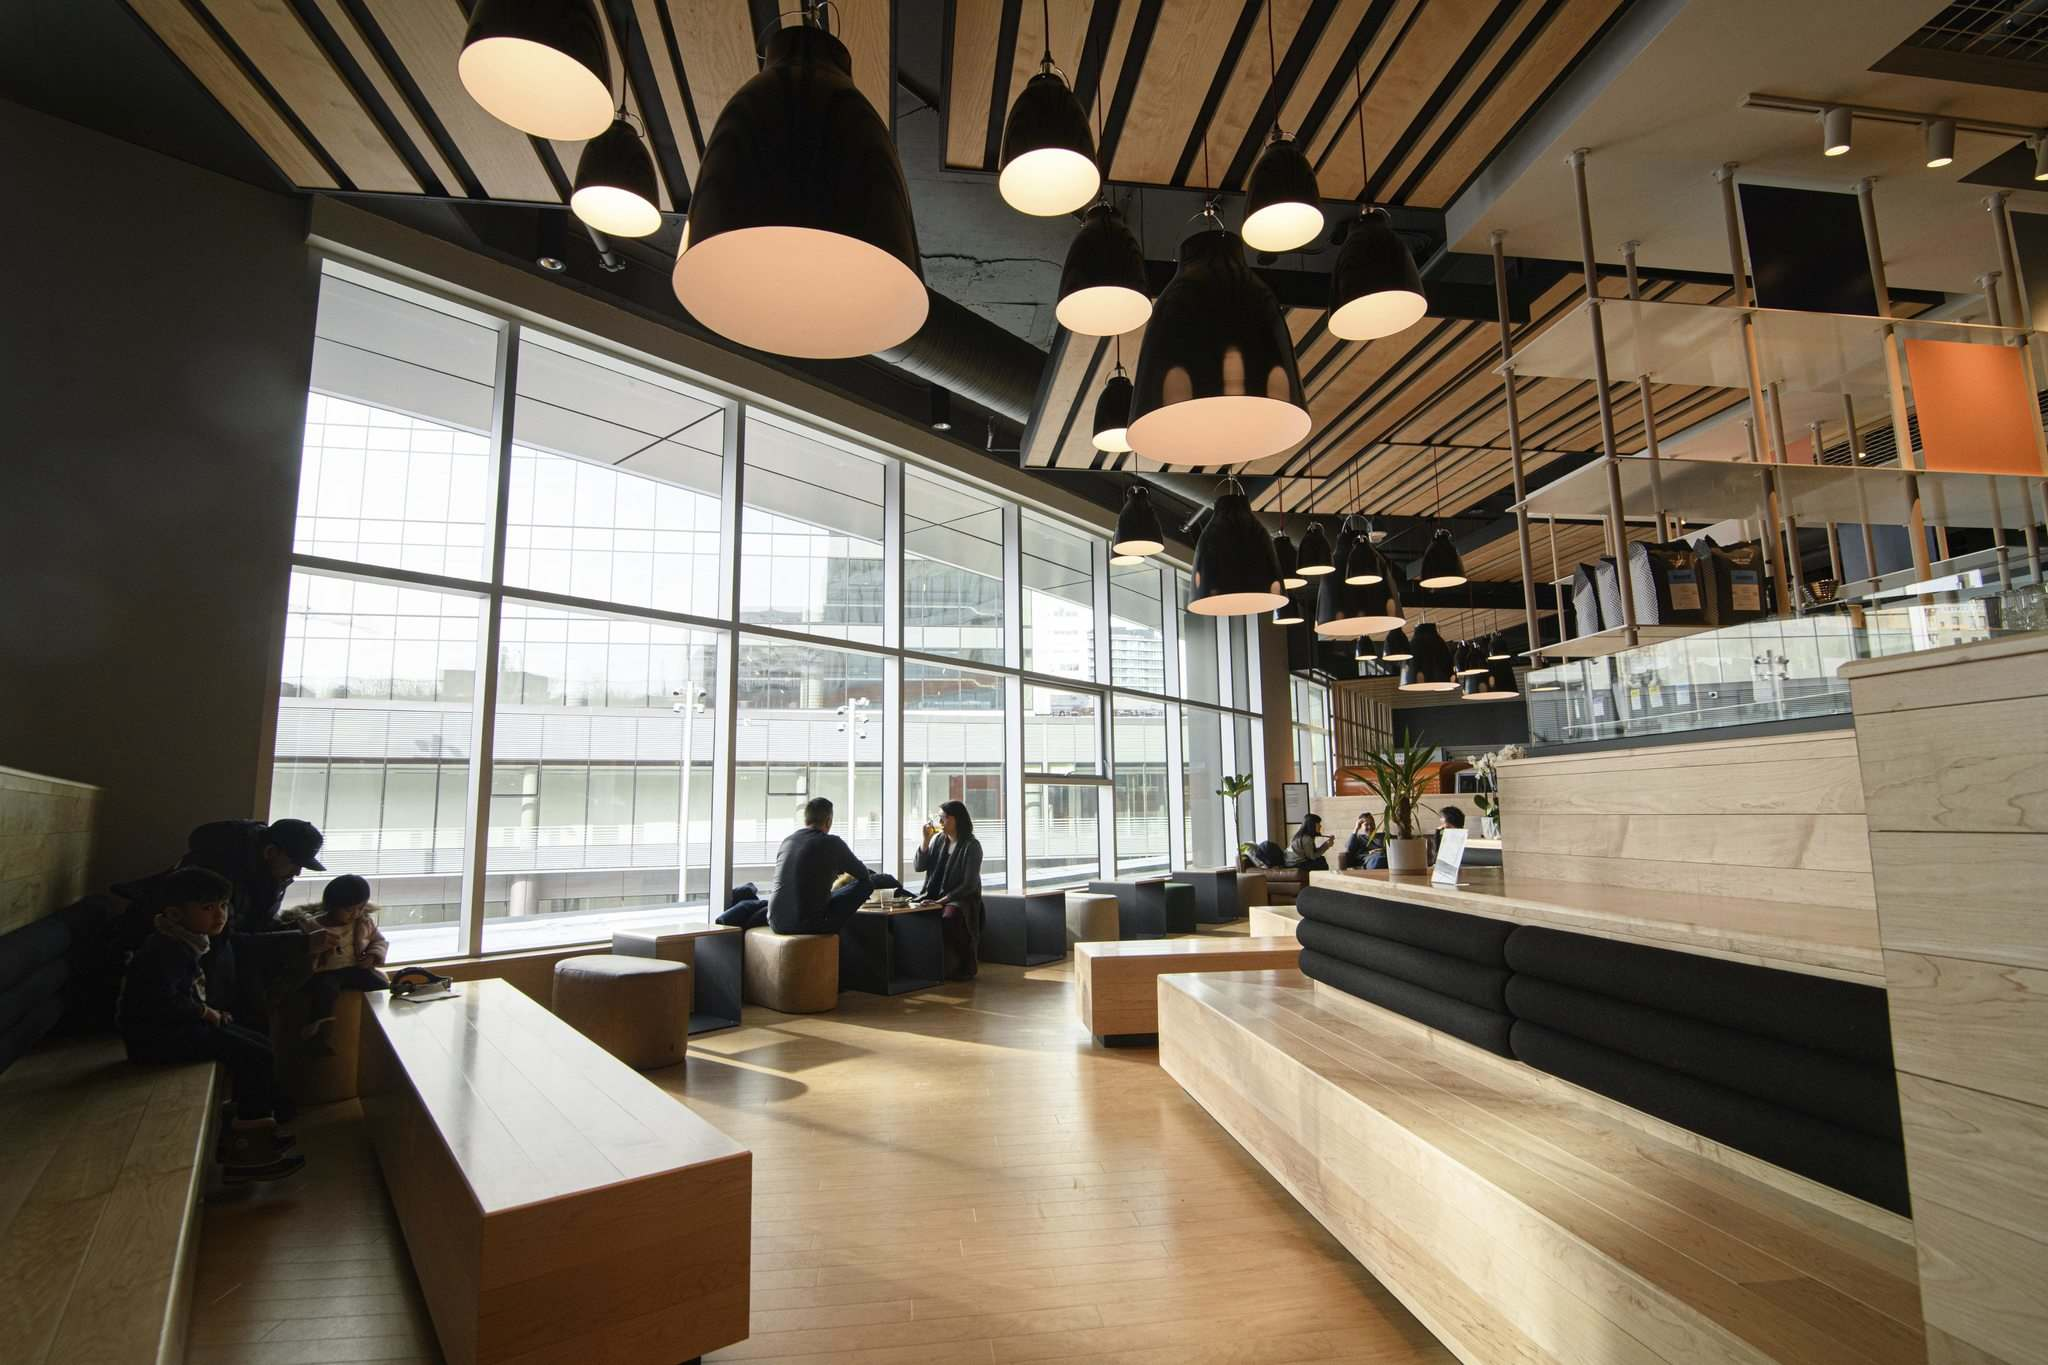 The new downtown food court features sleek bench seating and floor-to-ceiling windows. The room gets packed before Jets games. (Mike Sudoma / Winnipeg Free Press)